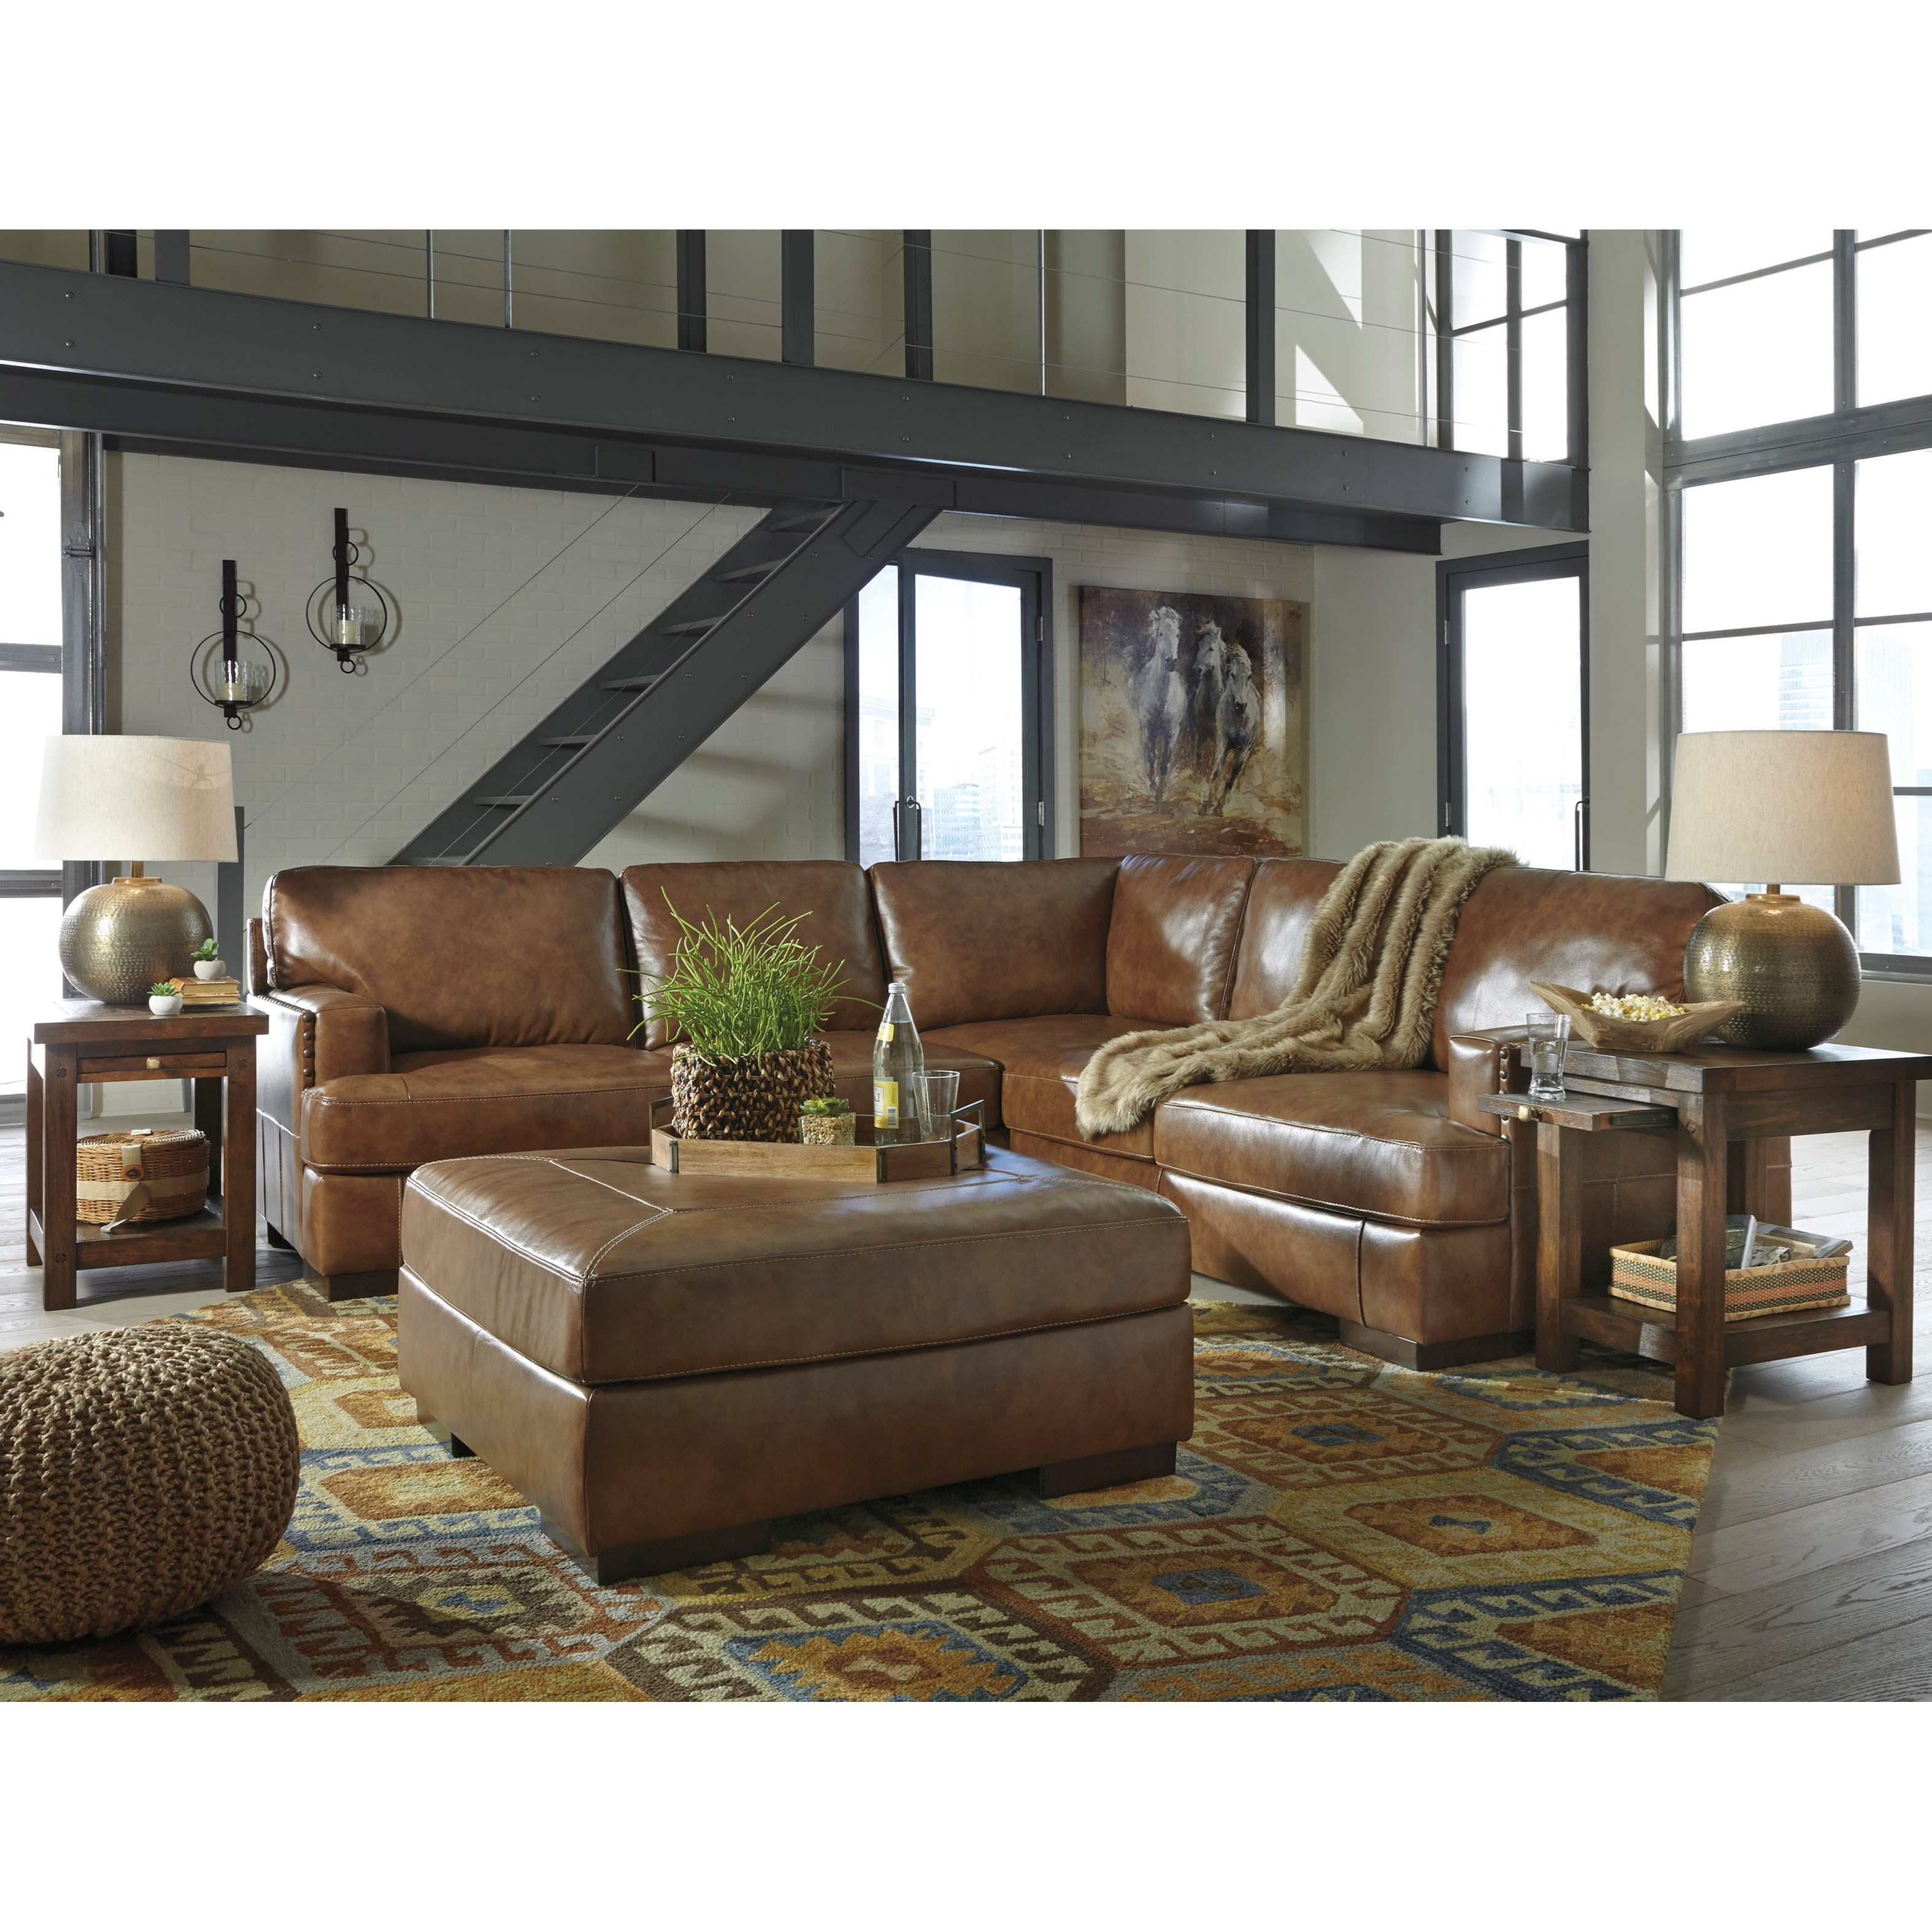 Signature Design by Ashley Vincenzo Stationary Living Room Group - Item Number: 30401 Living Room Group 2